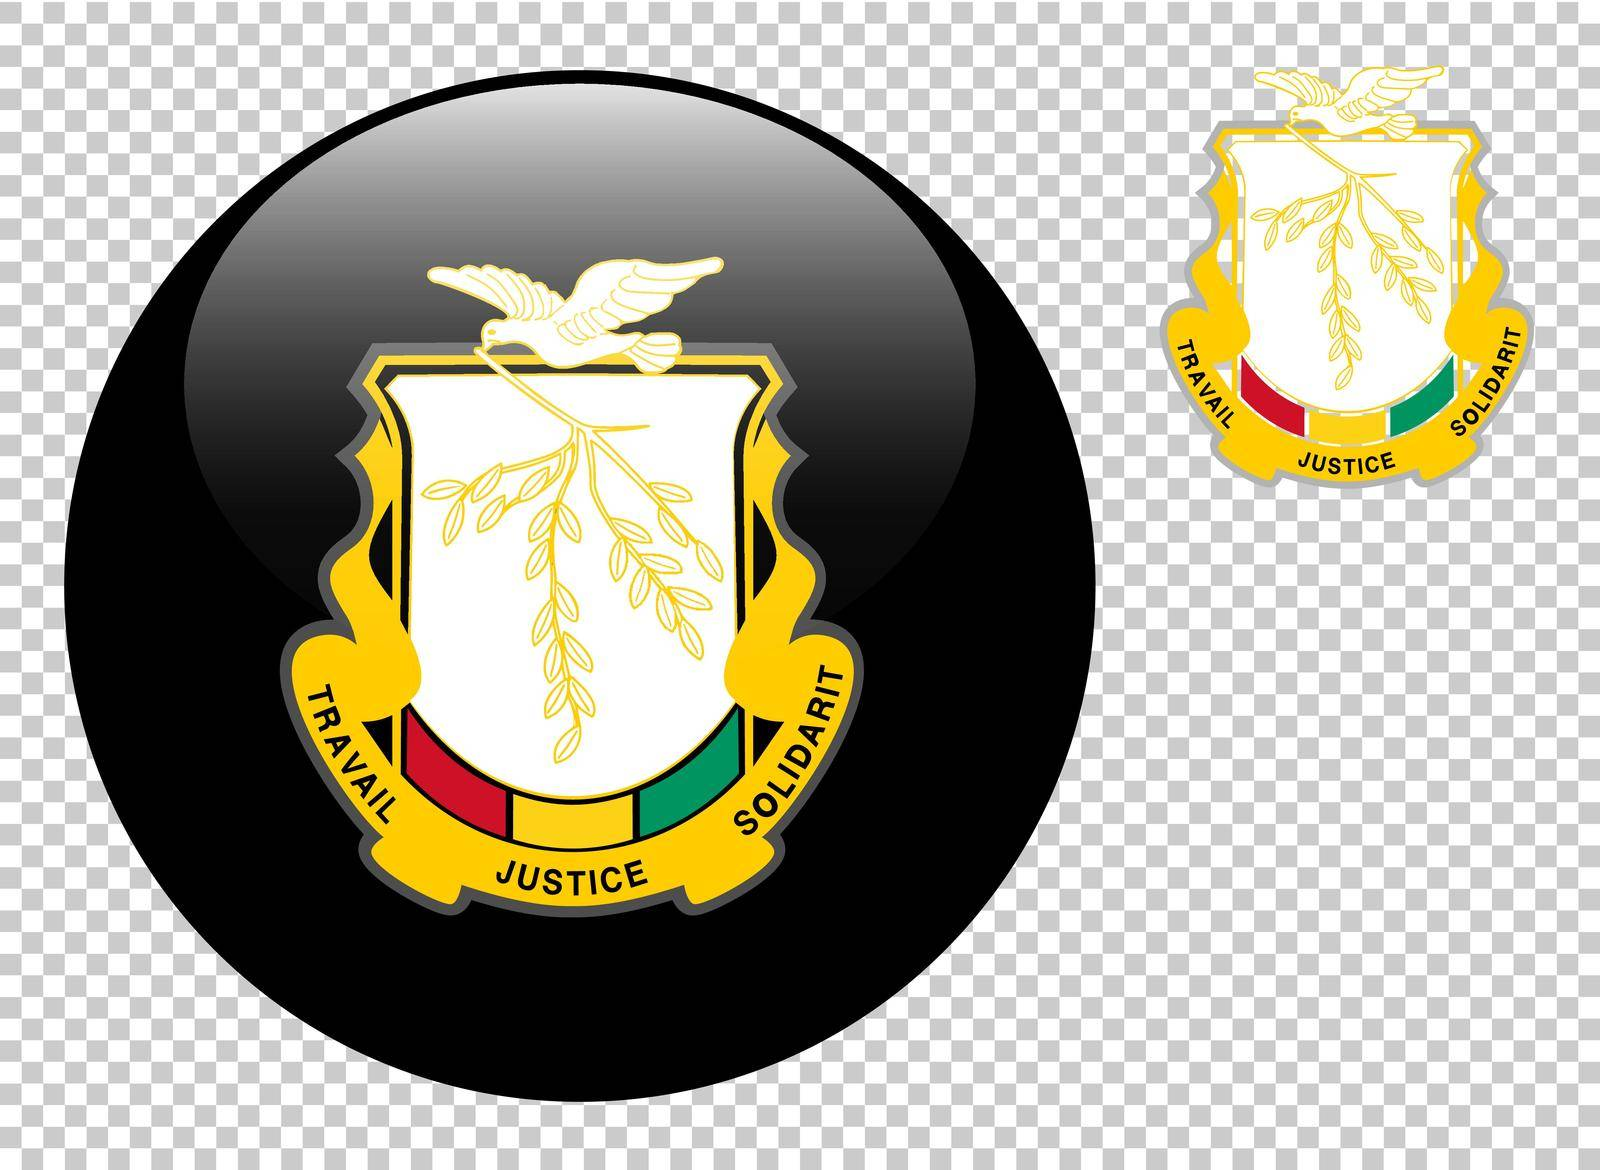 Coat of arms of Guinea vector illustration on a transparent background